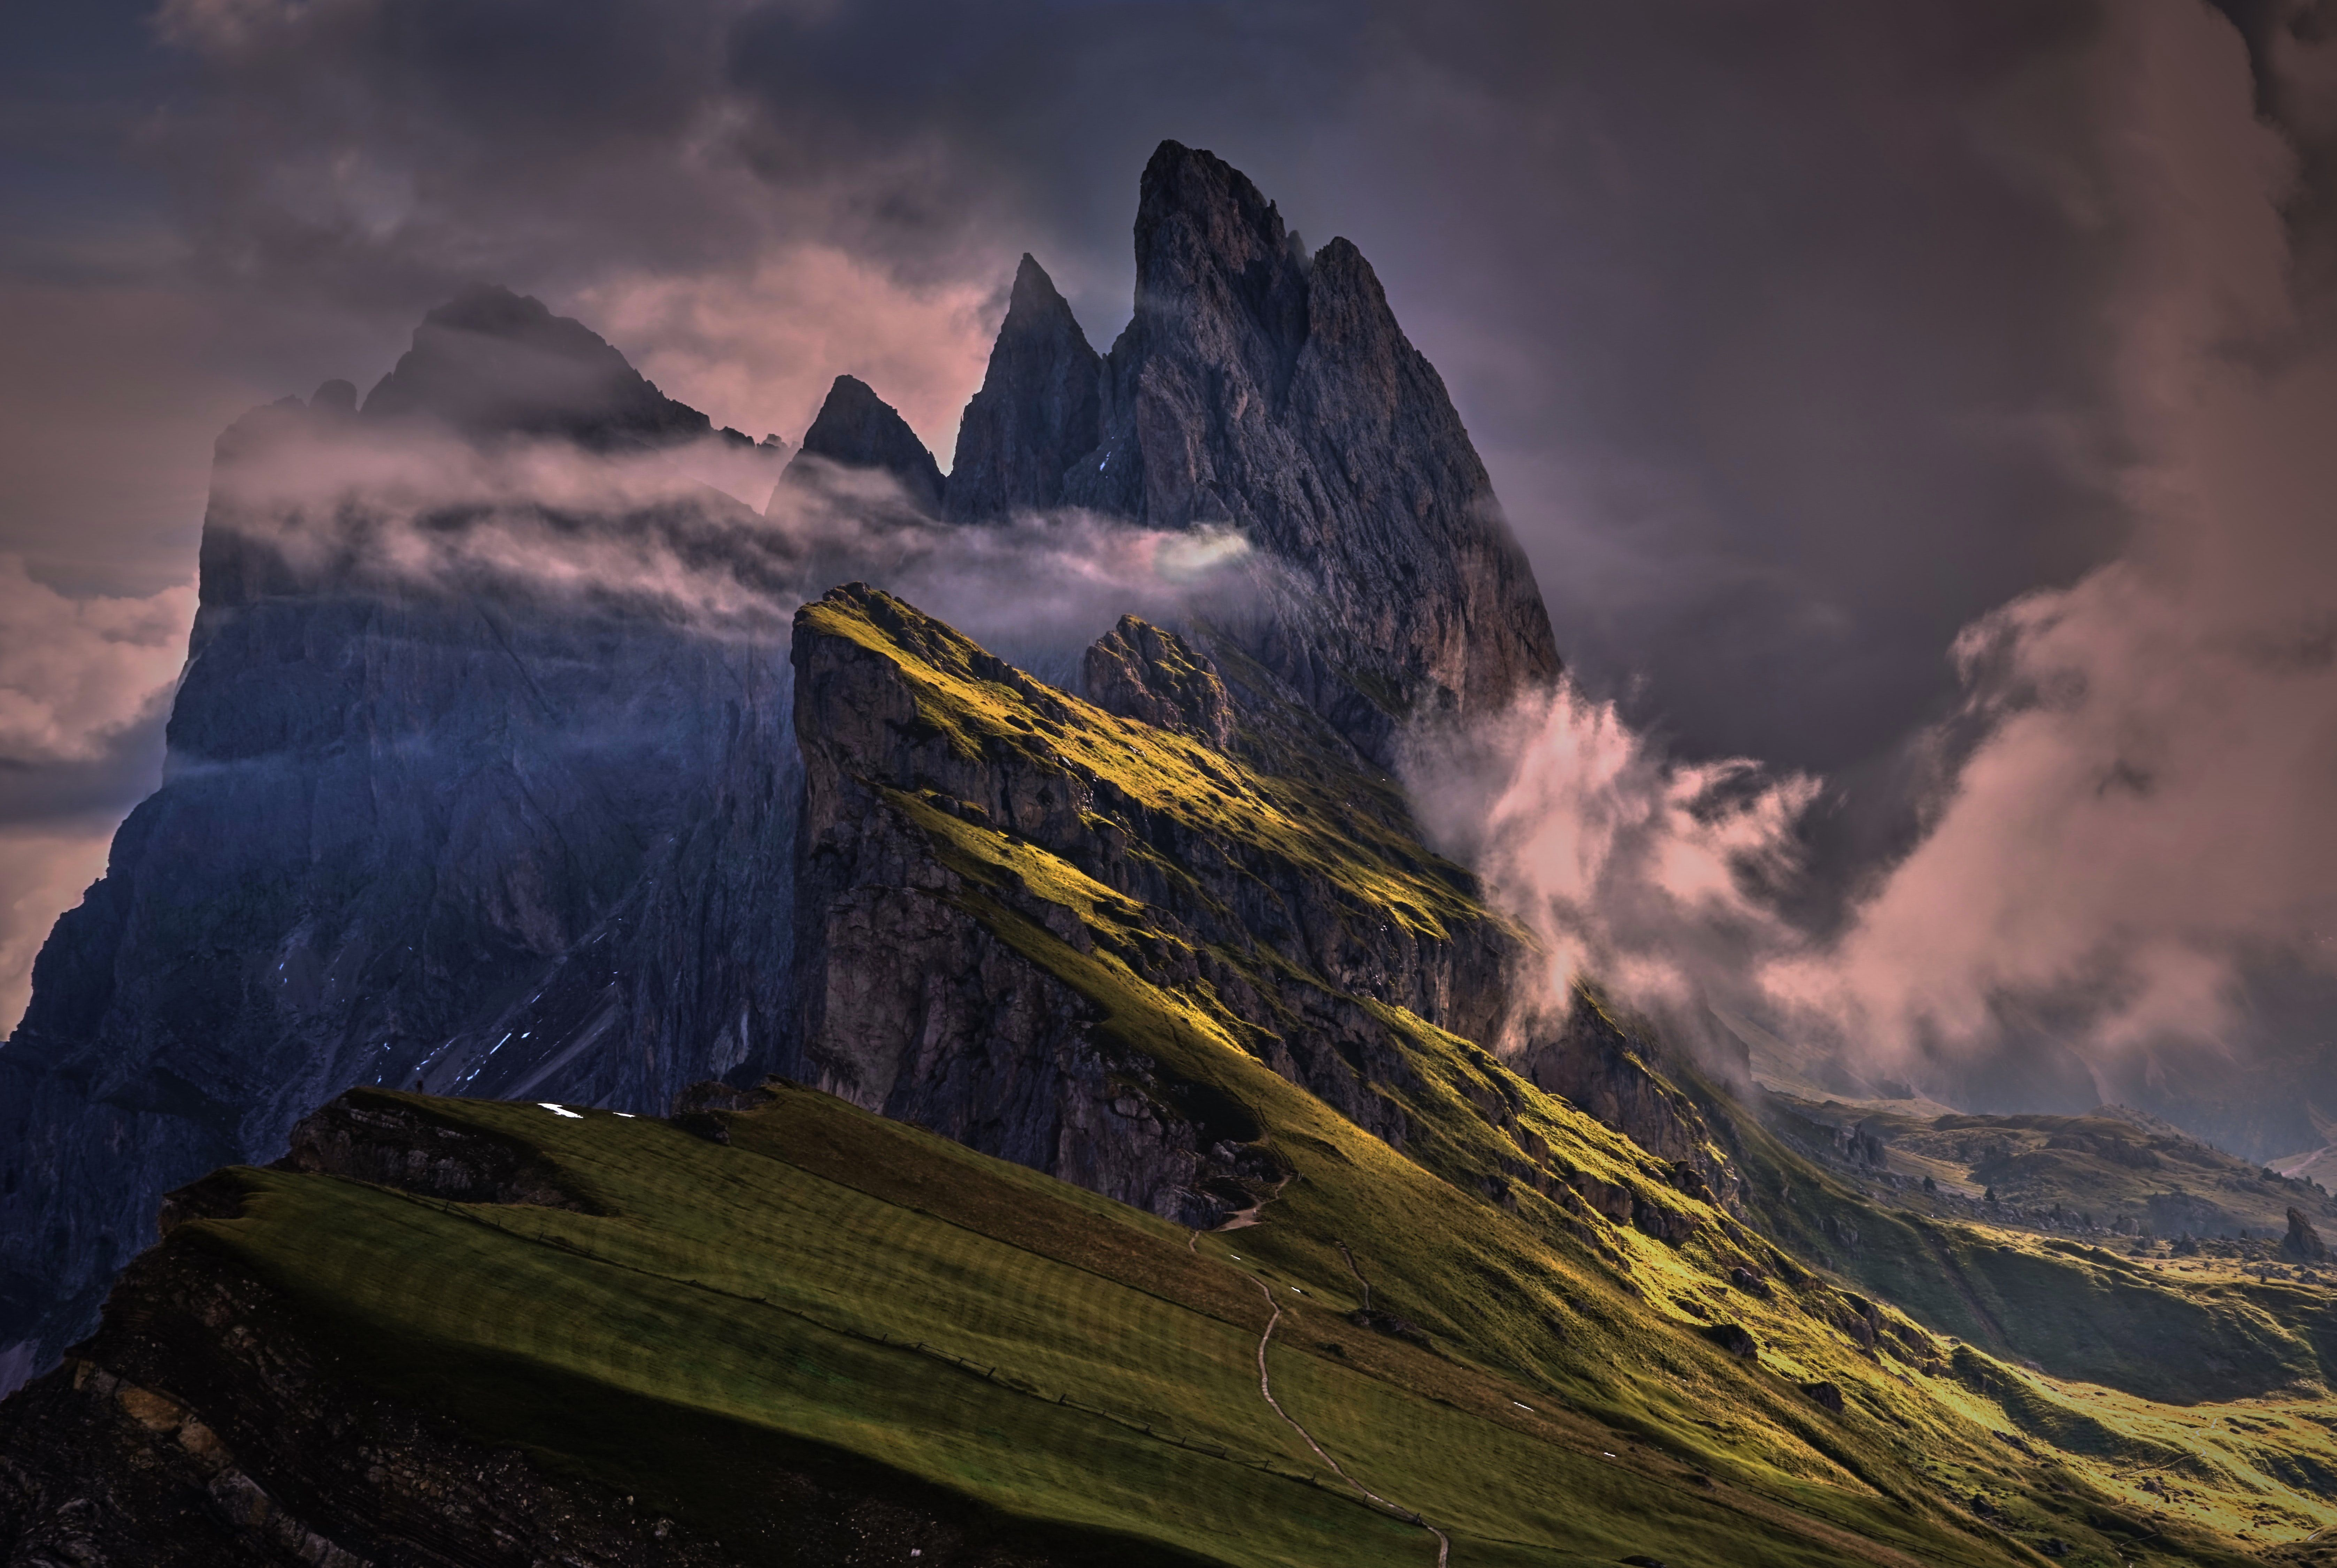 """Your Shot photographer Todd B. had a goal to see the Dolomites, a dramatic mountain range in Italy, at sunrise. But there was one problem--the gondola to the top didn't open until well after the sun was up. Undeterred, he woke up at 4:00 am and hiked two hours to the top of Seceda. """"Needless to say, it was worth it,"""" he says. """"I couldn't have asked for better!"""""""